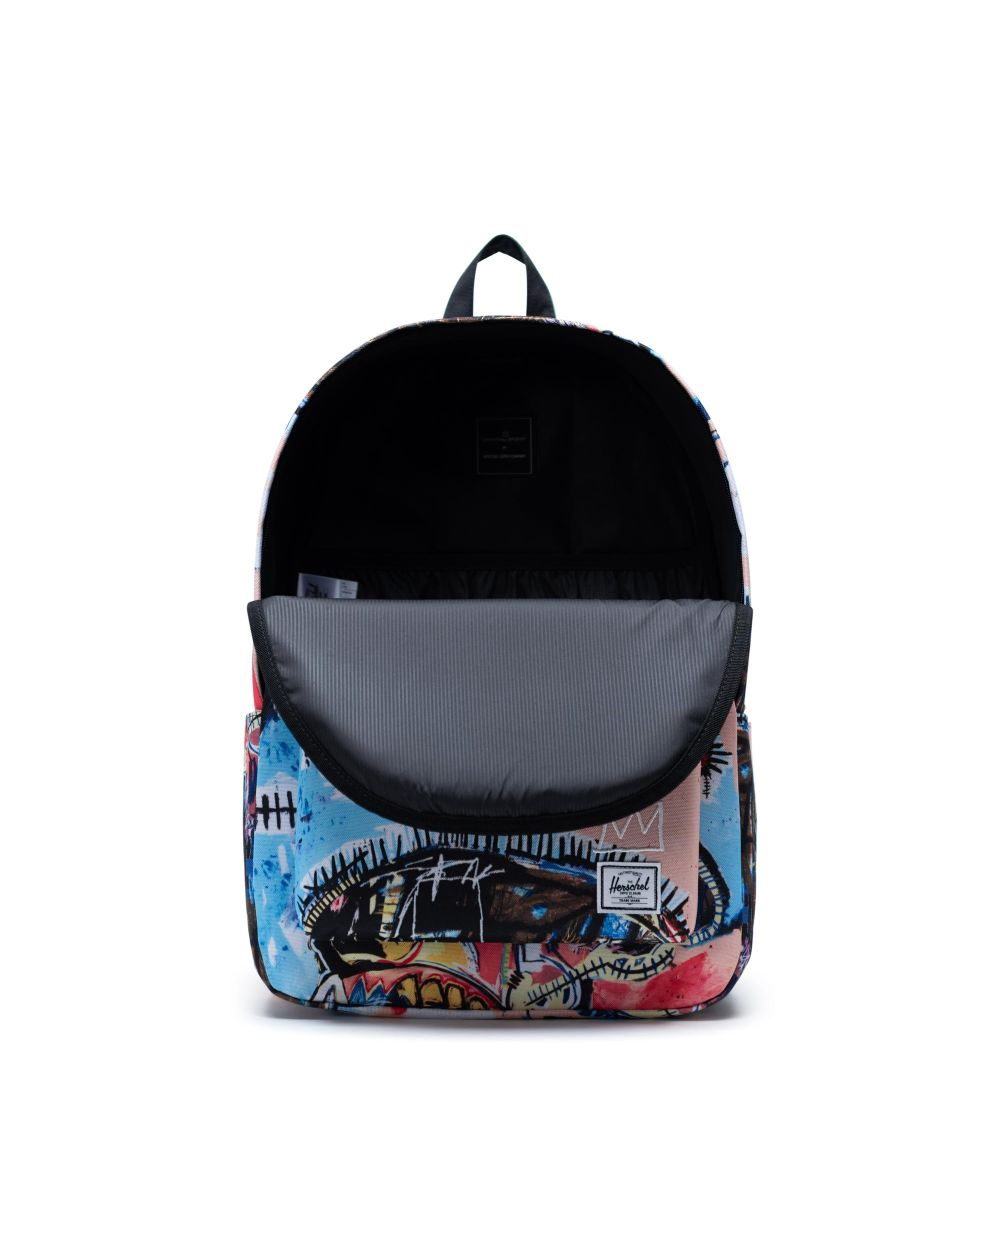 Herschel Supply Co. x Basquiat - Classic XL Backpack, Basquiat Skull